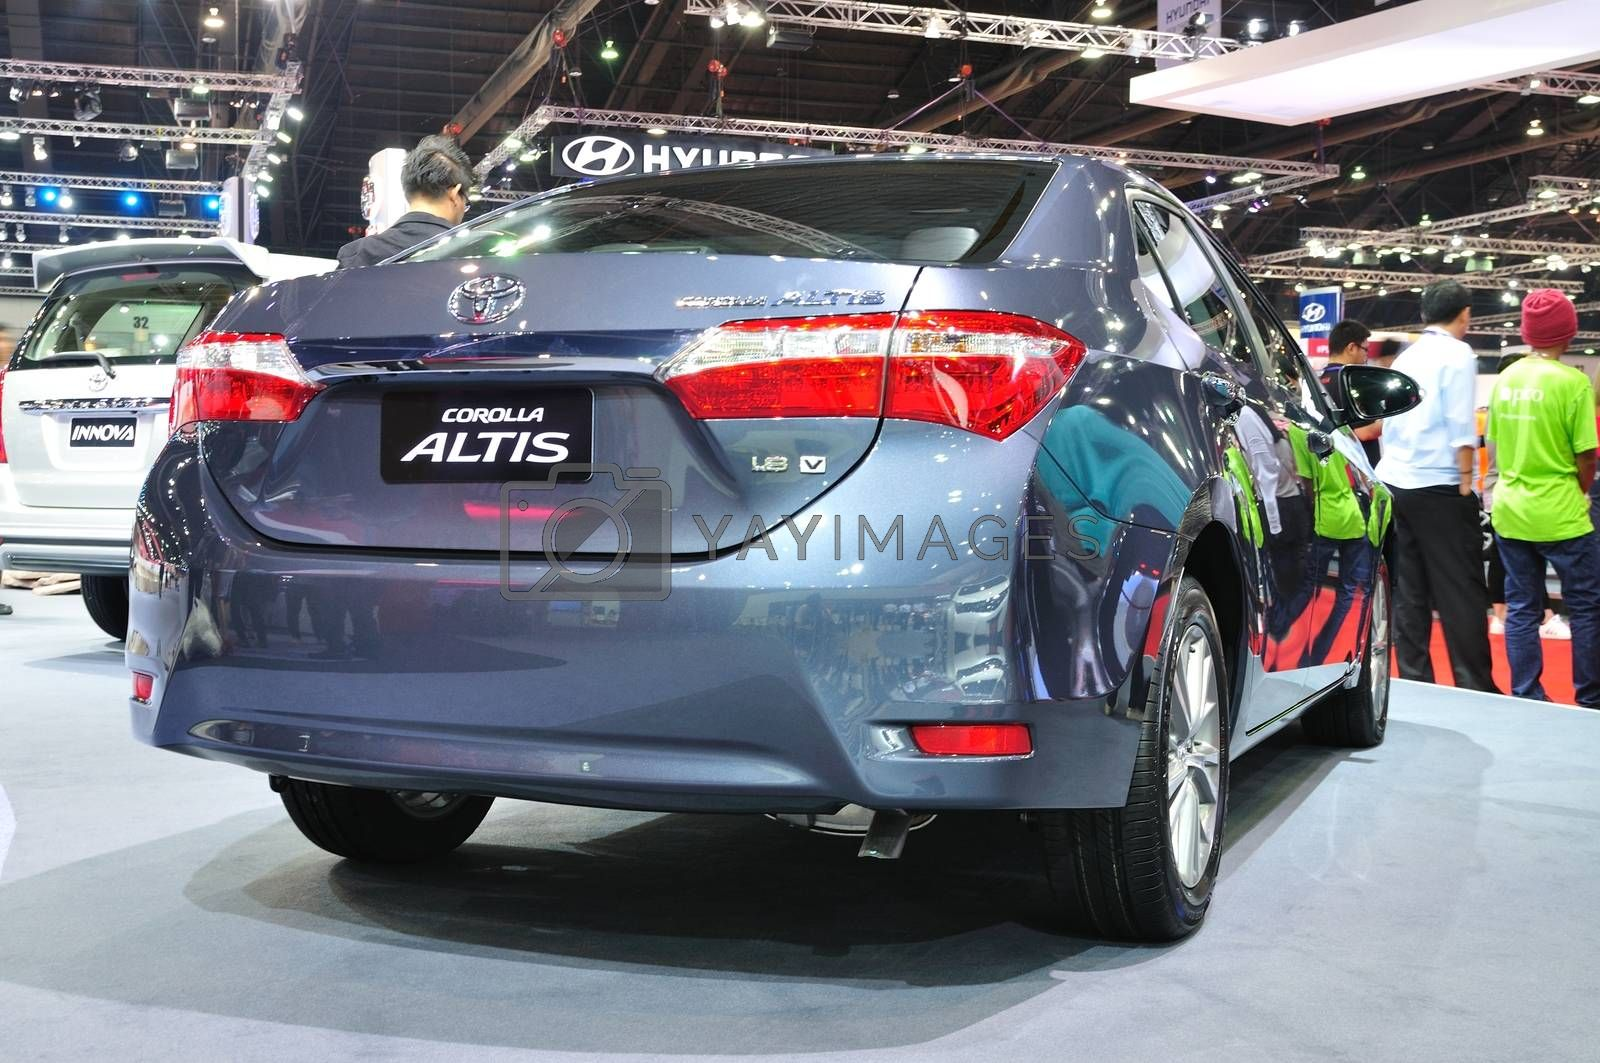 NONTHABURI - MARCH 25:ToyoTa Alits Esport is ondiisplay at The 3 by thampapon